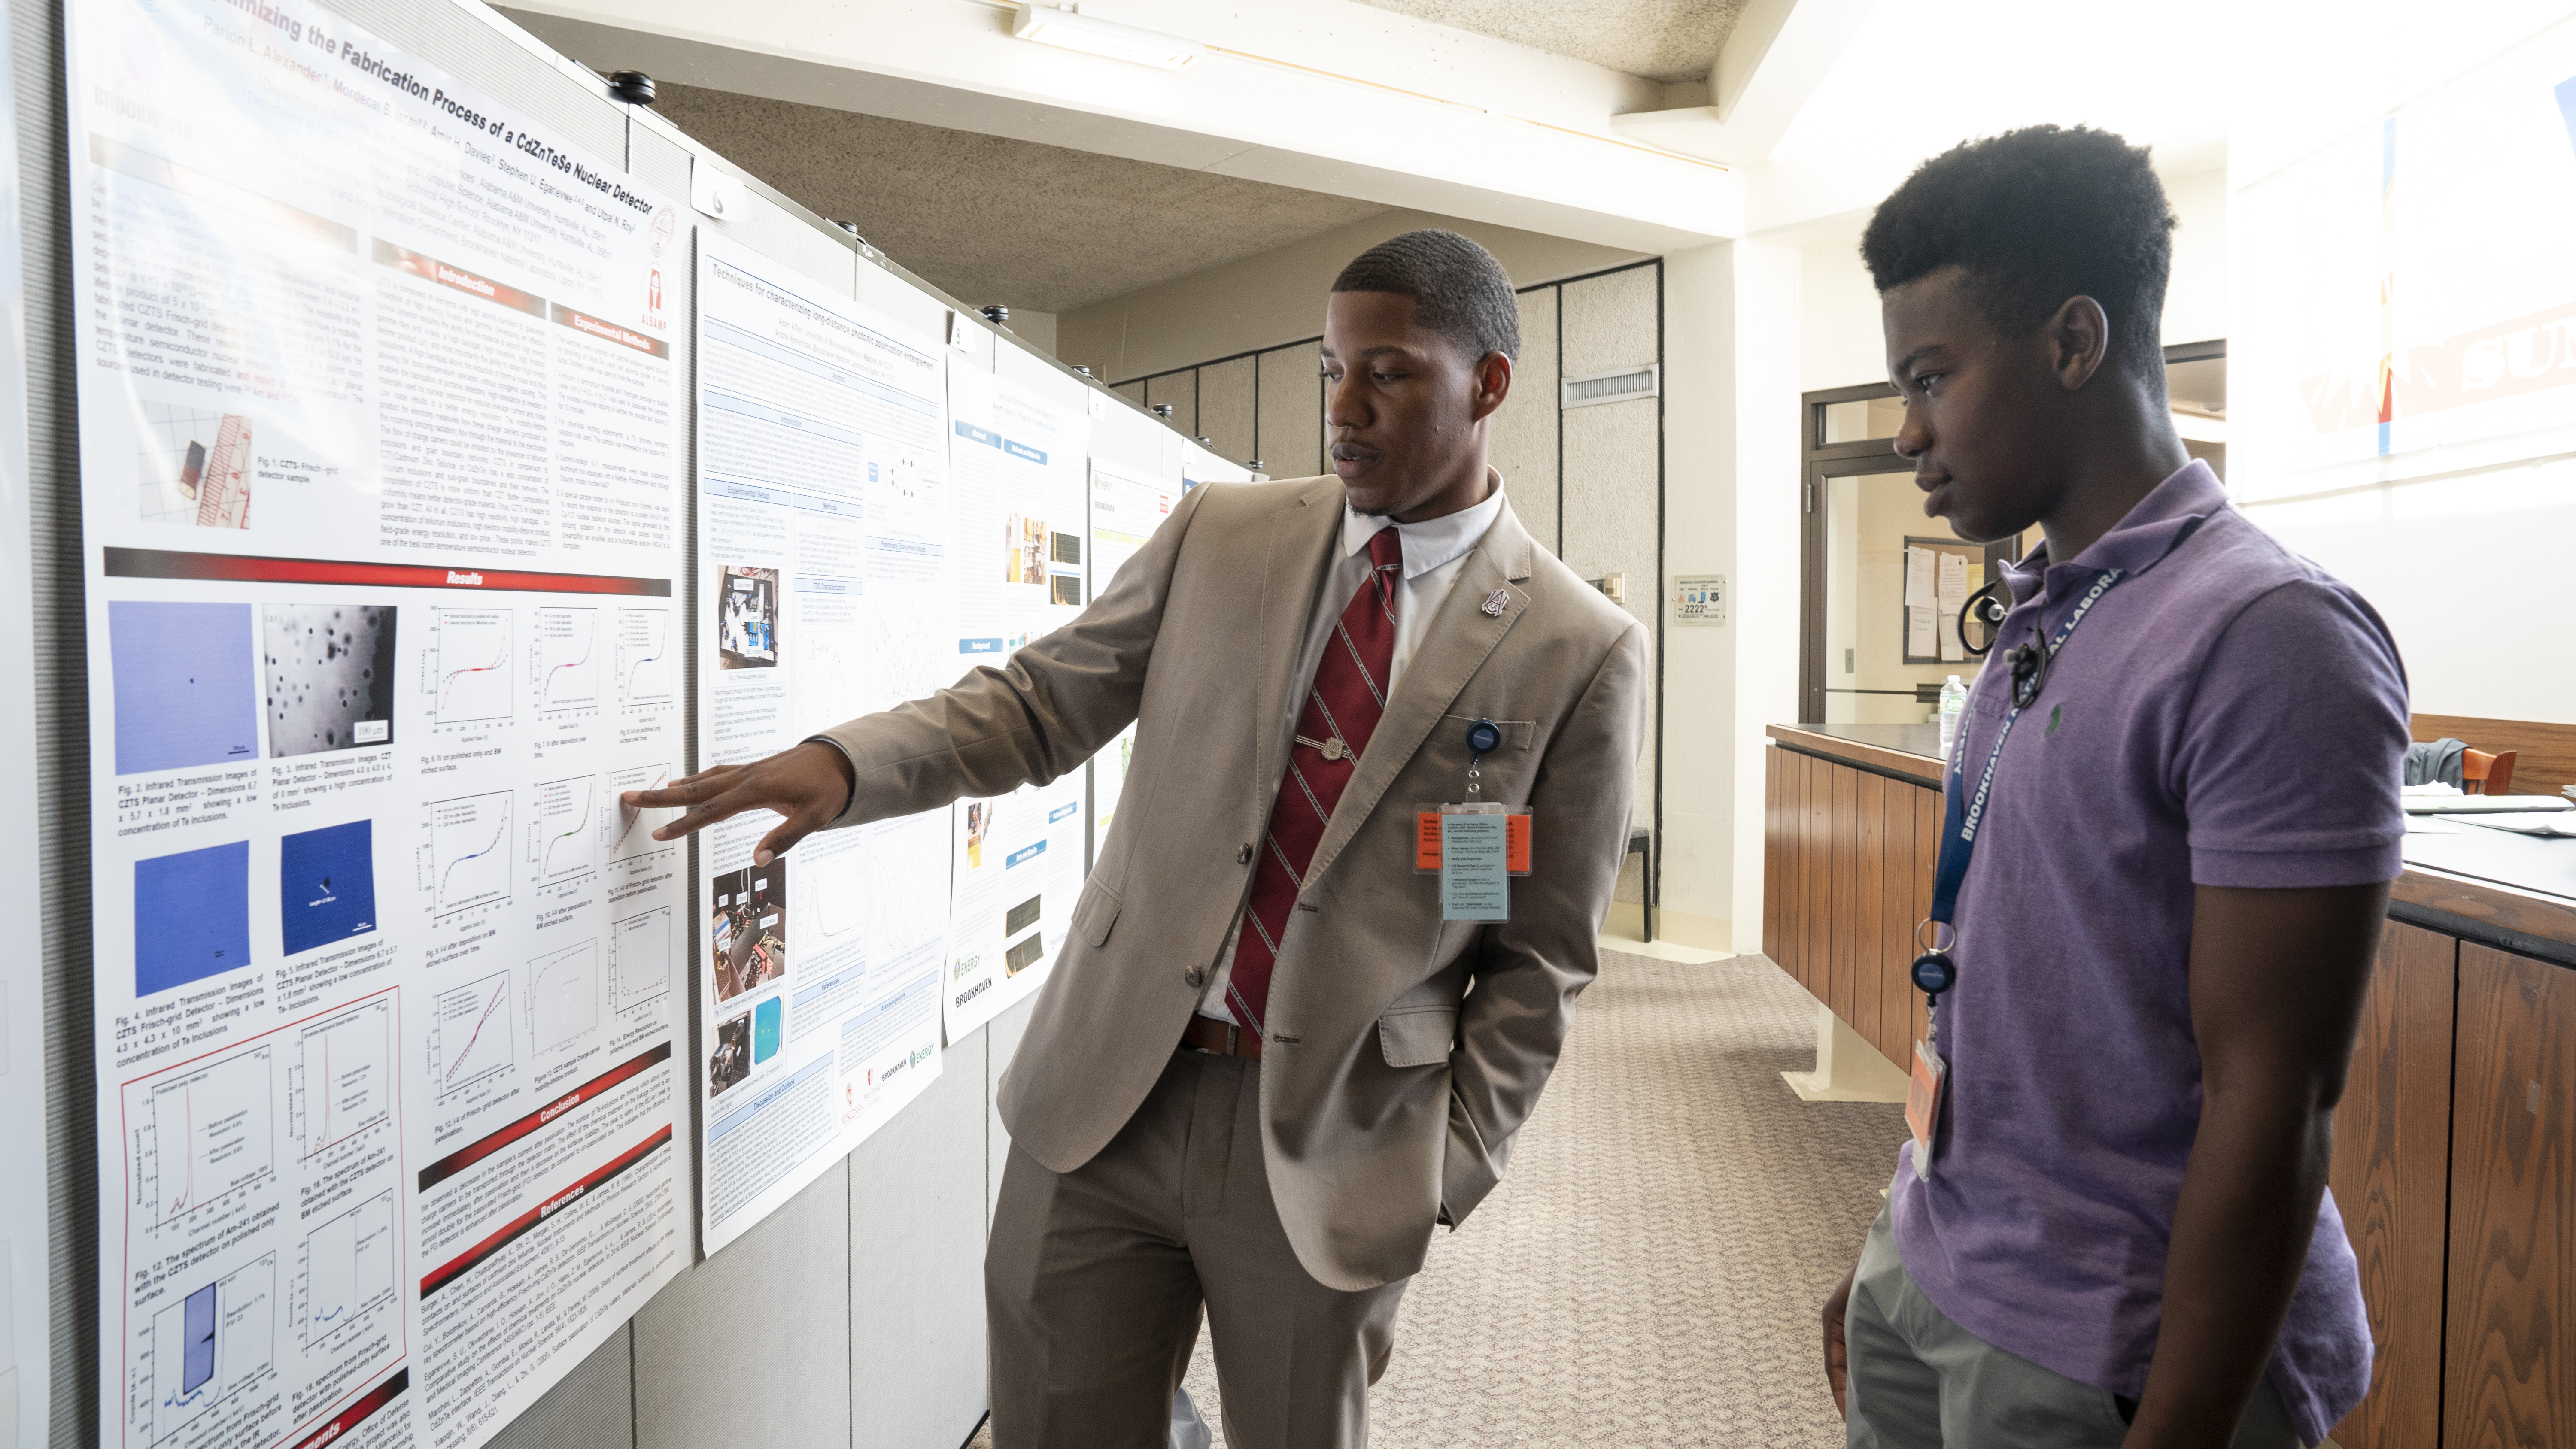 Brookhaven interns discussed their summer research projects with their peers and Lab staff during a poster session that preceded the closing ceremony.